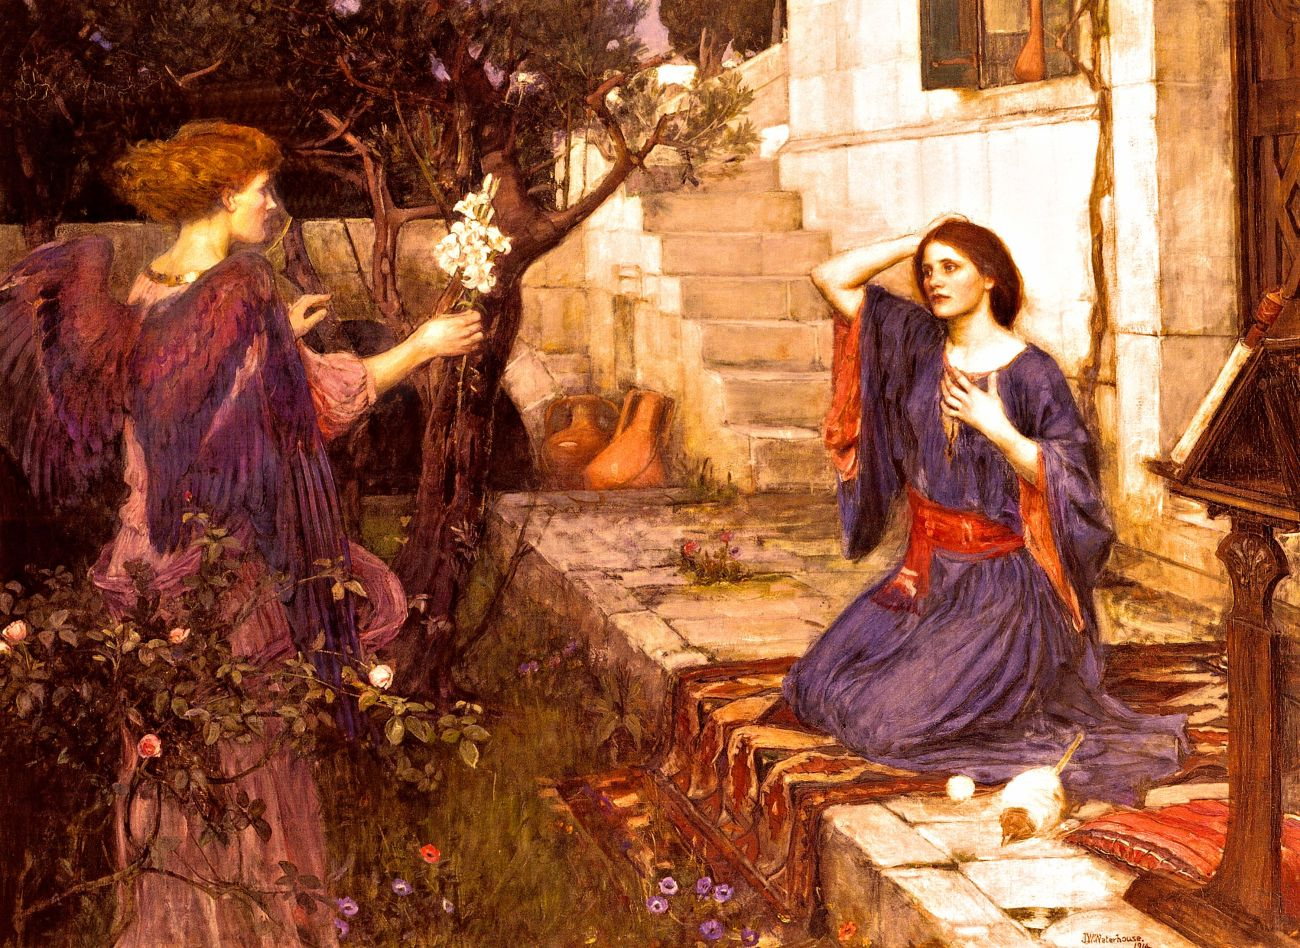 john_william_waterhouse_-_the_annunciation_t